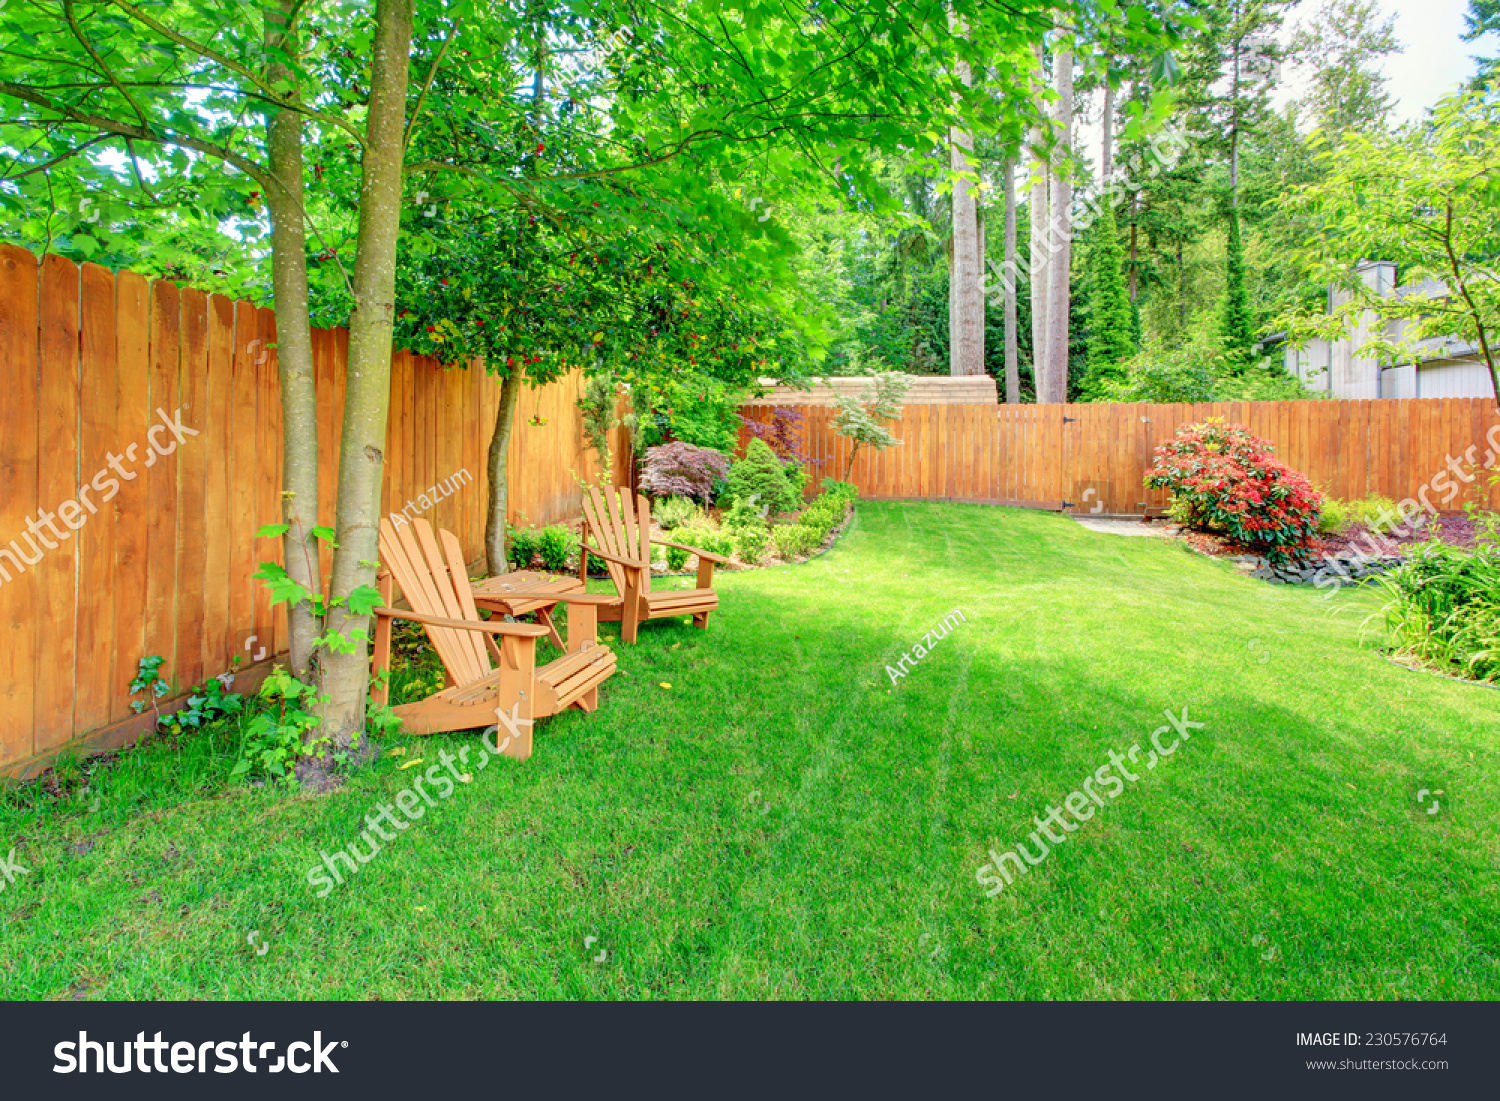 fenced backyard with green lawn flower beds and romantic